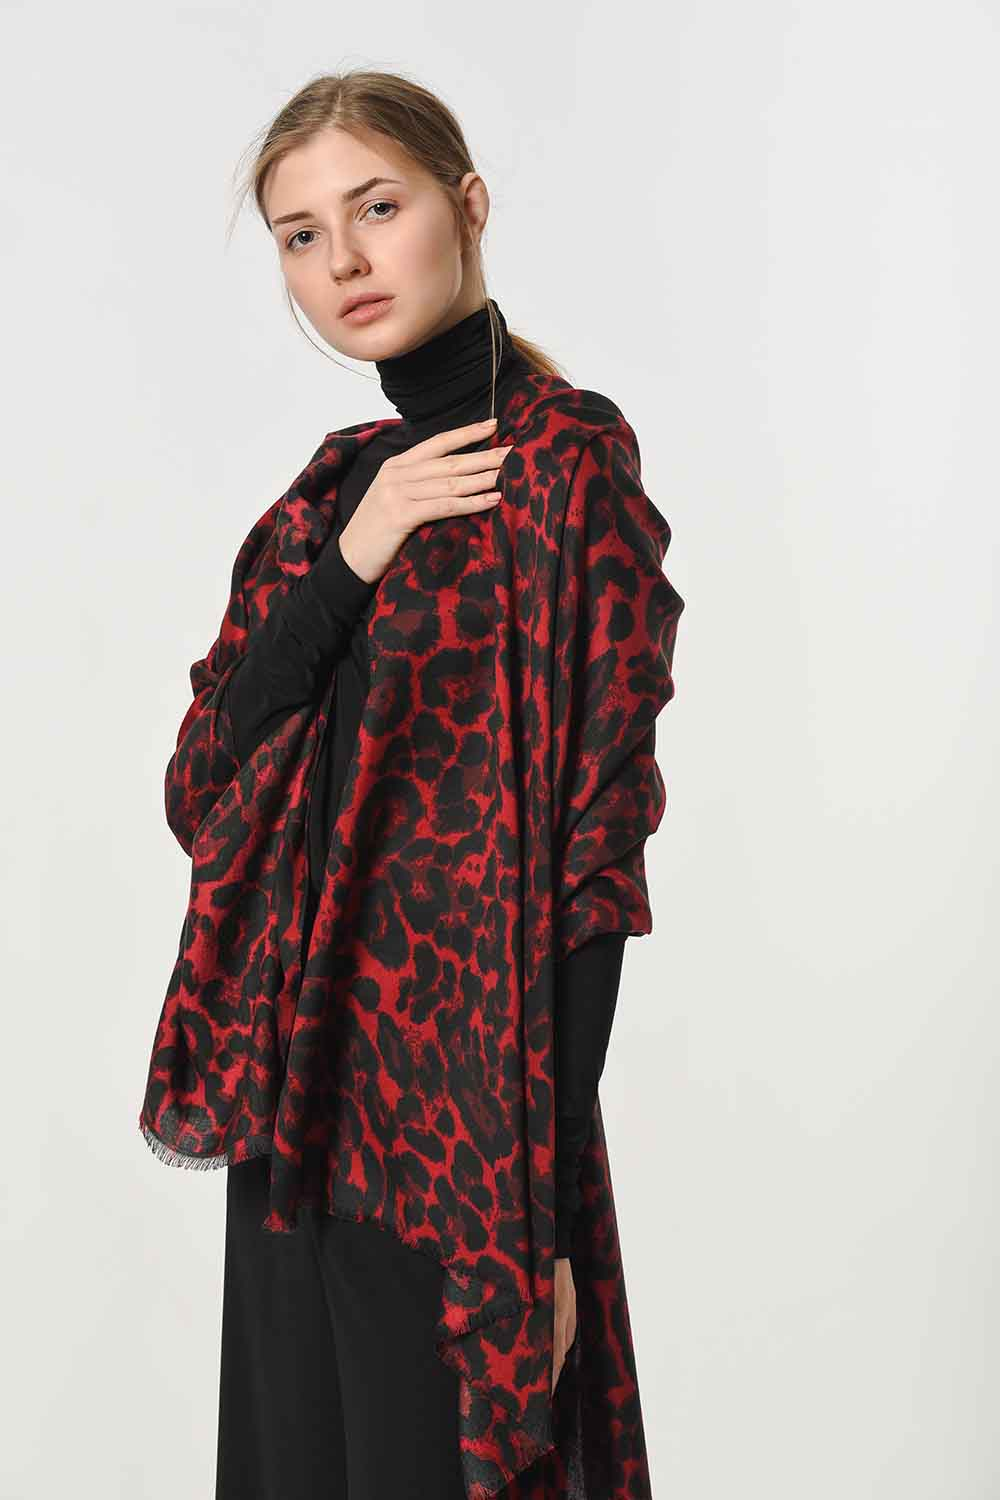 MIZALLE Leopard Patterned Shawl (Claret Red) (1)